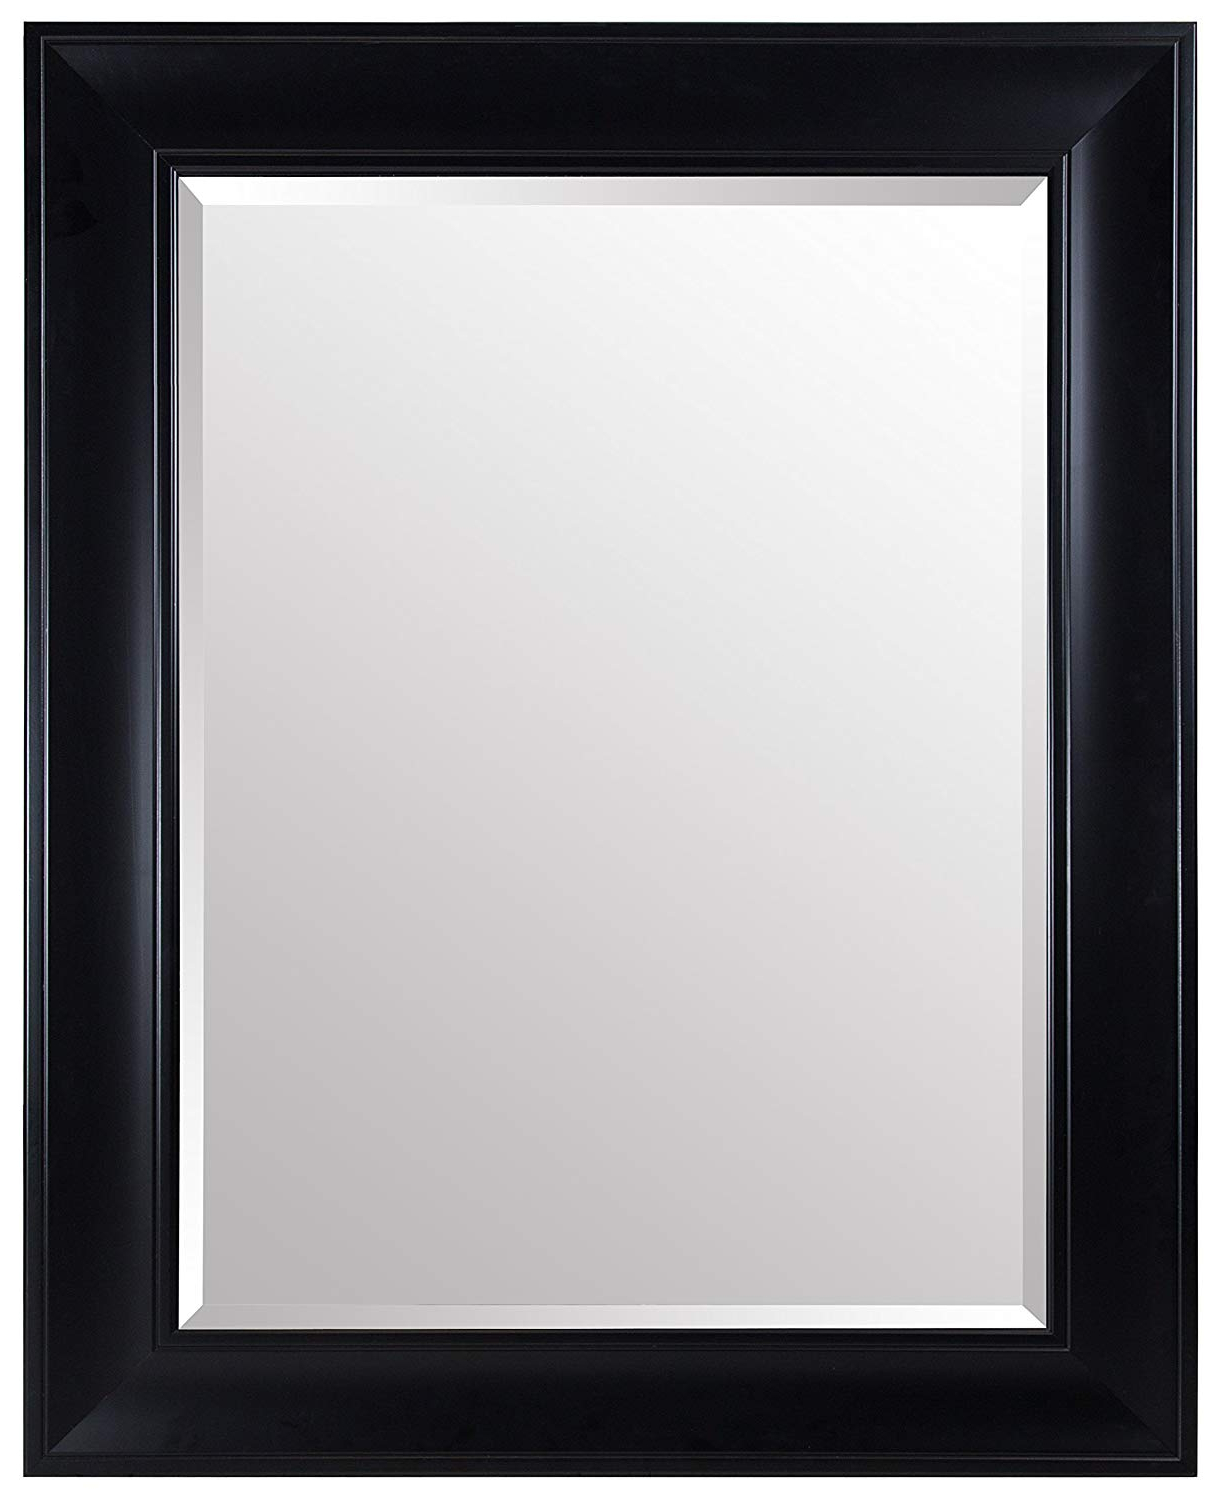 "Gallery Solutions Large 29X39 Wall Satin Frame Black 29""x39"" Inch Beveled Mirror W/wide Profile, Throughout Most Recent Large Wall Mirror Without Frame (View 12 of 20)"